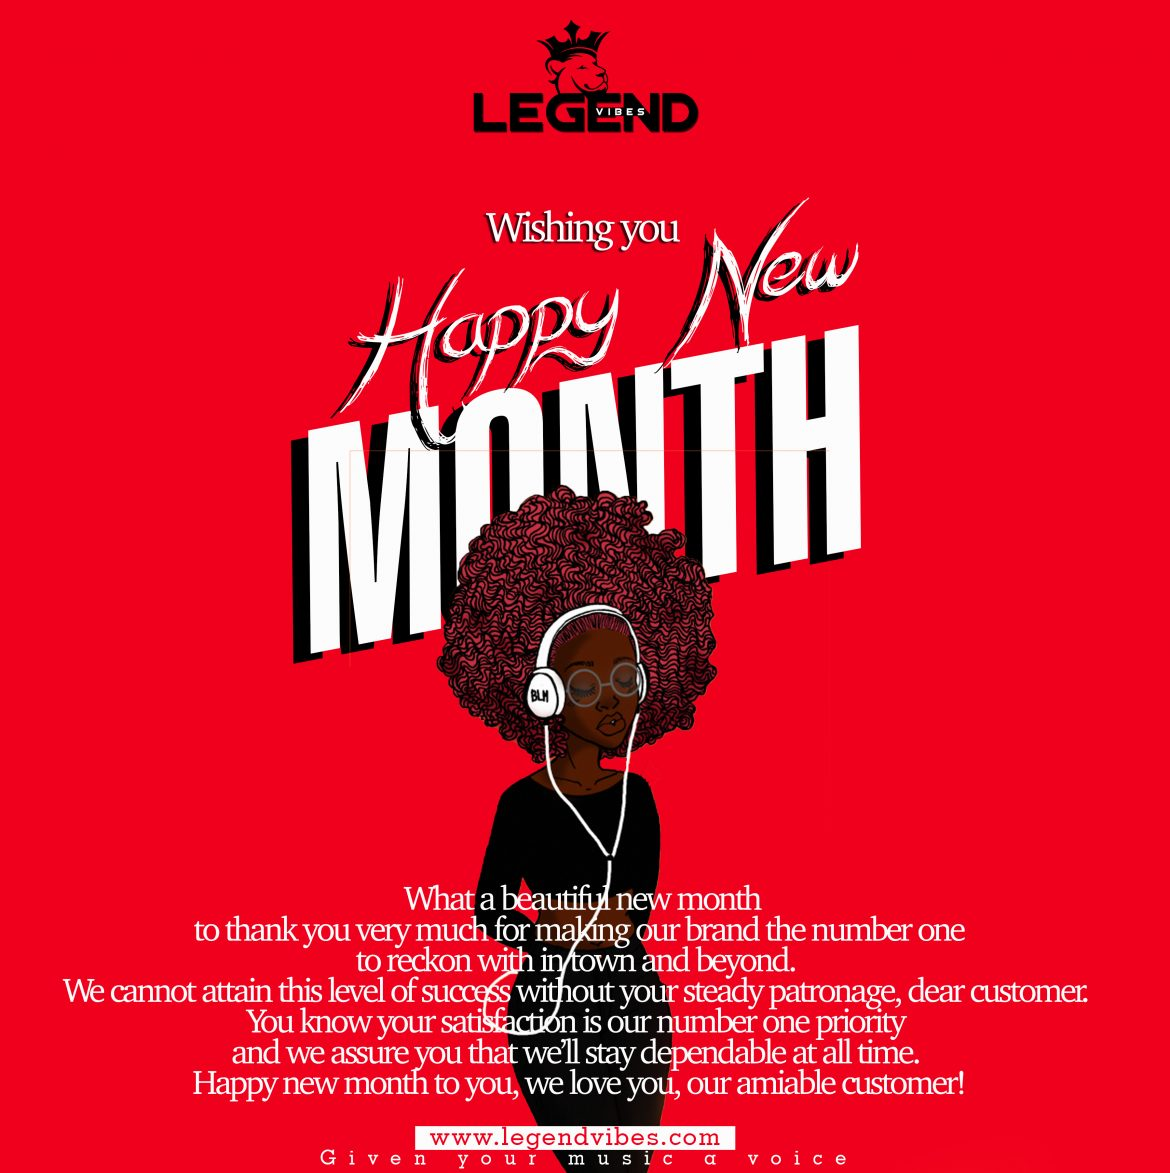 [NEWS]Legendvibes Wishing You Happy New Month